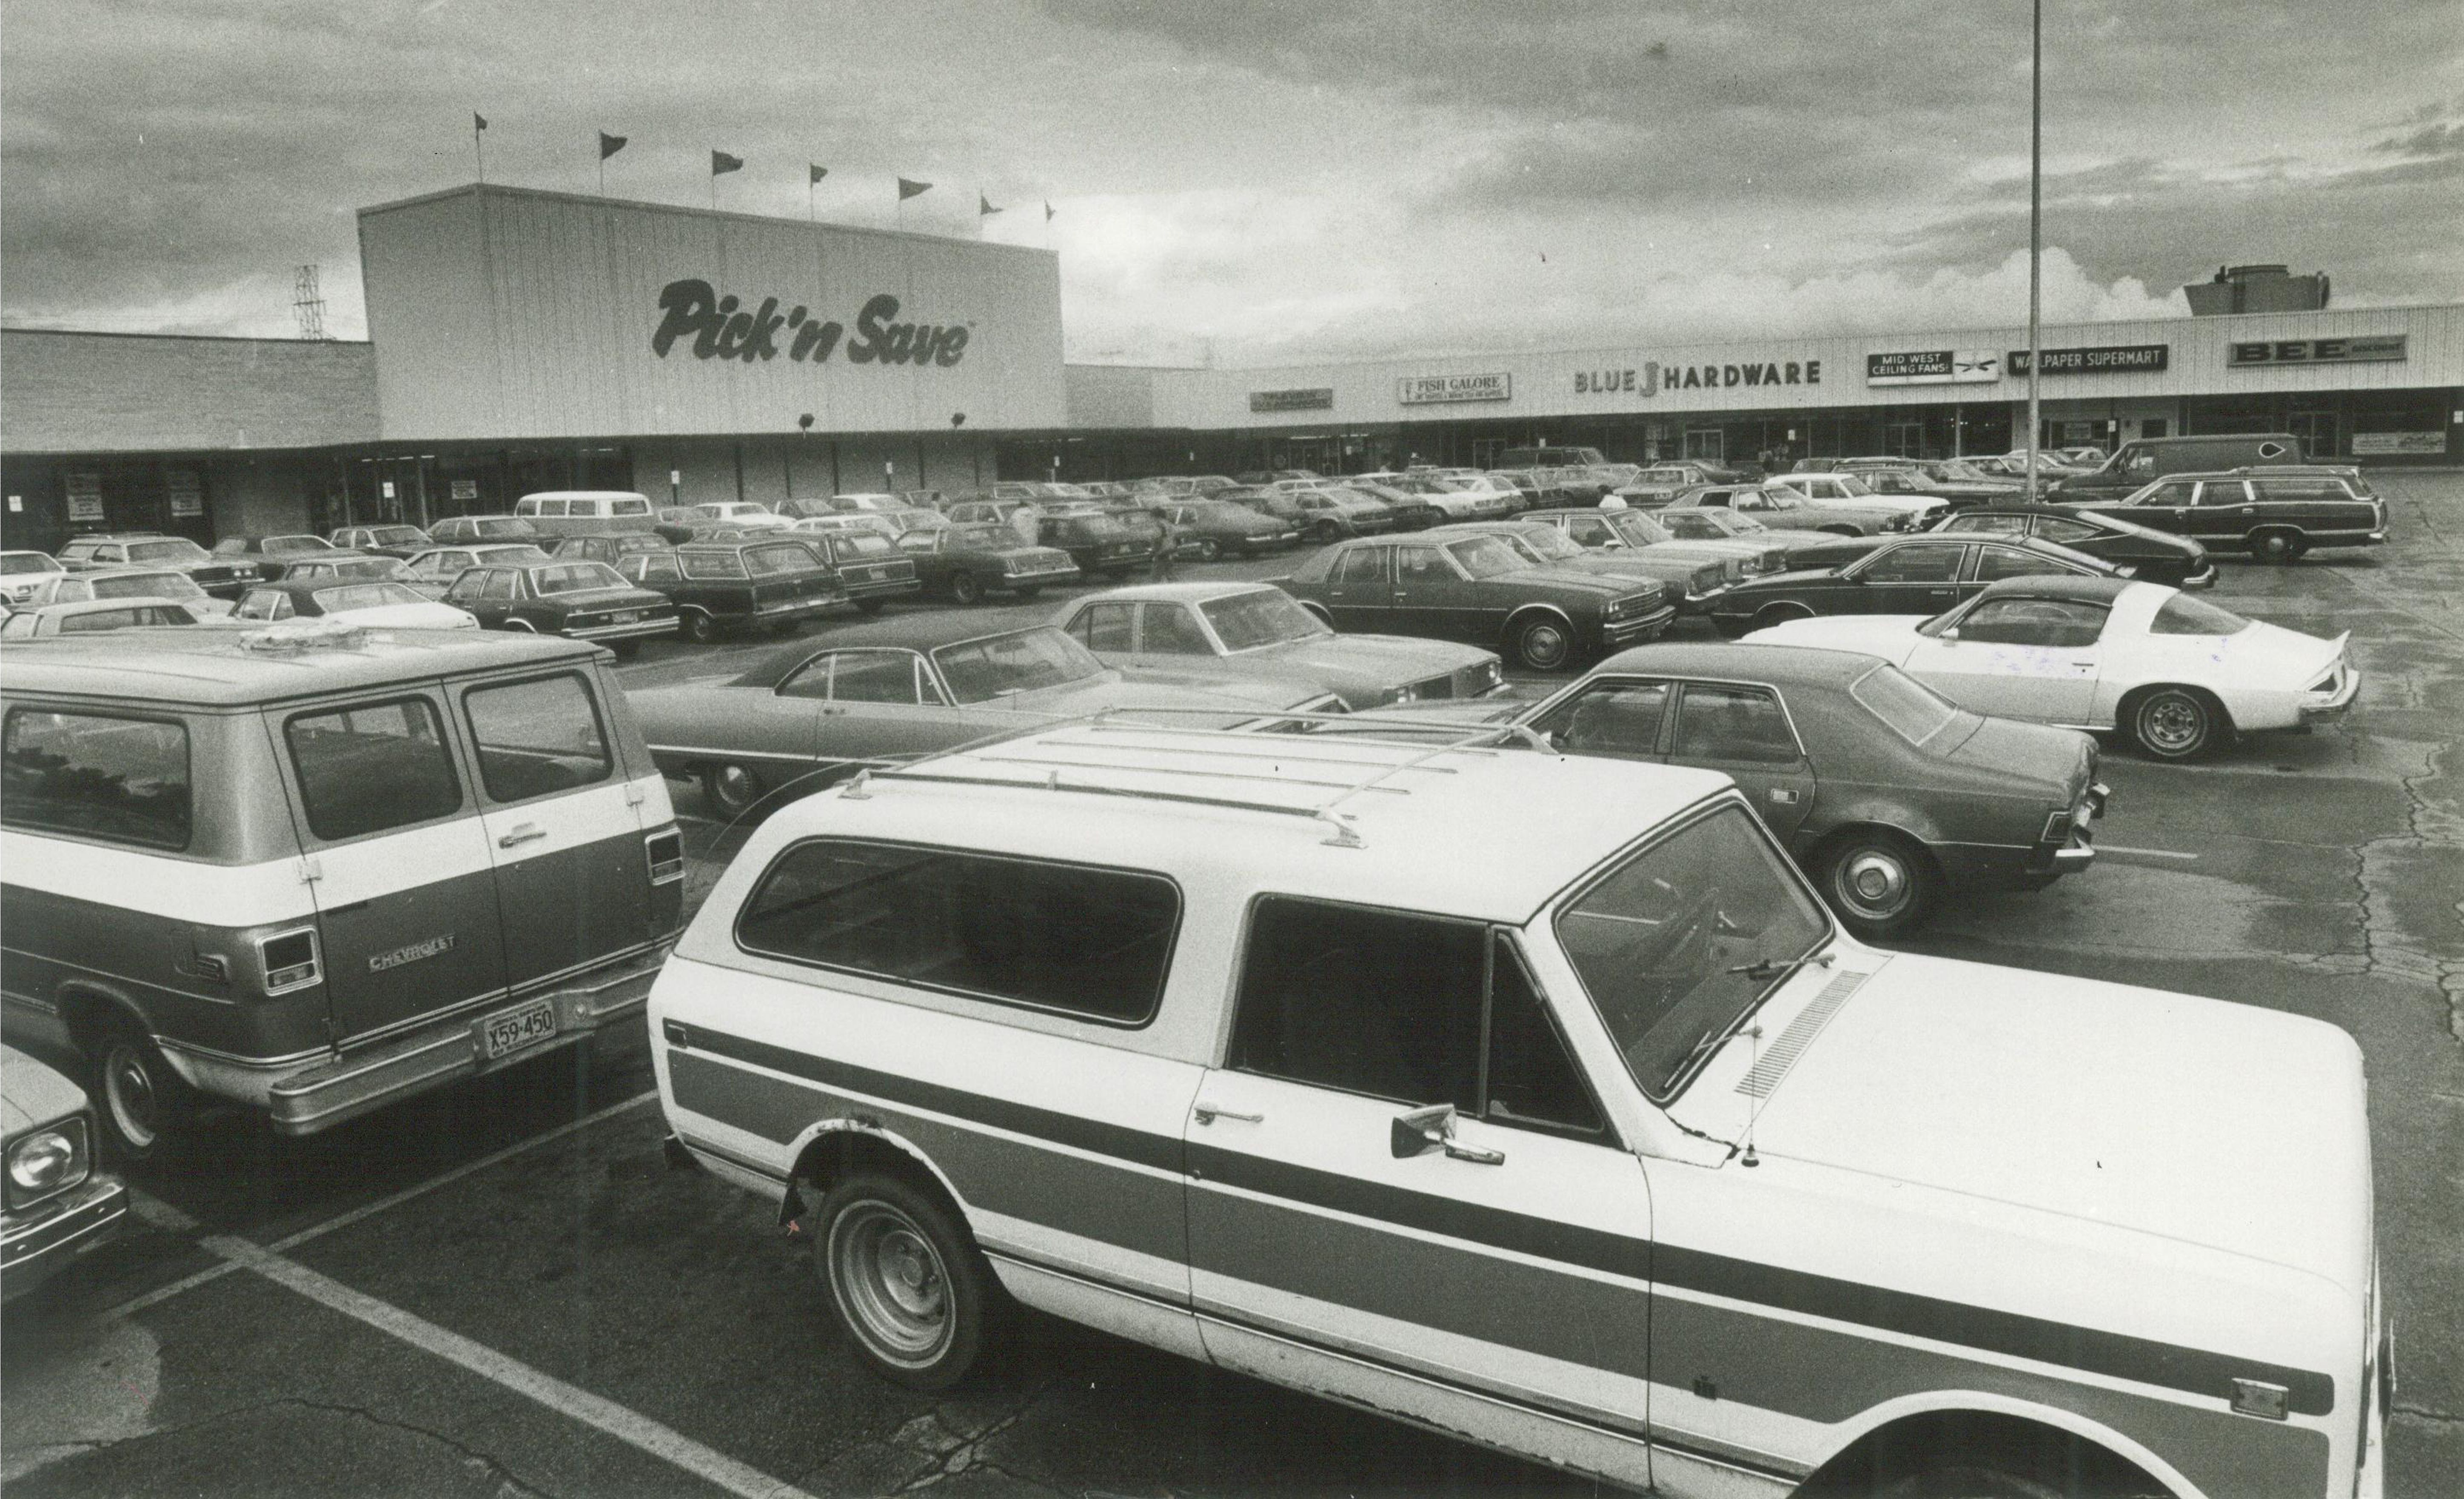 <table class=&quot;lightbox&quot;><tr><td colspan=2 class=&quot;lightbox-title&quot;>Greenfield_01</td></tr><tr><td colspan=2 class=&quot;lightbox-caption&quot;>Lacking any major industrial sites, Greenfield does host several larger shopping facilities, like the Spring Mall, pictured here in 1982.</td></tr><tr><td colspan=2 class=&quot;lightbox-spacer&quot;></td></tr><tr class=&quot;lightbox-detail&quot;><td class=&quot;cell-title&quot;>Source: </td><td class=&quot;cell-value&quot;>From the Historic Photo Collection of the Milwaukee Public Library. Reprinted with permission.<br /><a href=&quot;http://content.mpl.org/cdm/singleitem/collection/HstoricPho/id/3767/rec/1&quot; target=&quot;_blank&quot;>Milwaukee Public Library</a></td></tr><tr class=&quot;filler-row&quot;><td colspan=2>&nbsp;</td></tr></table>